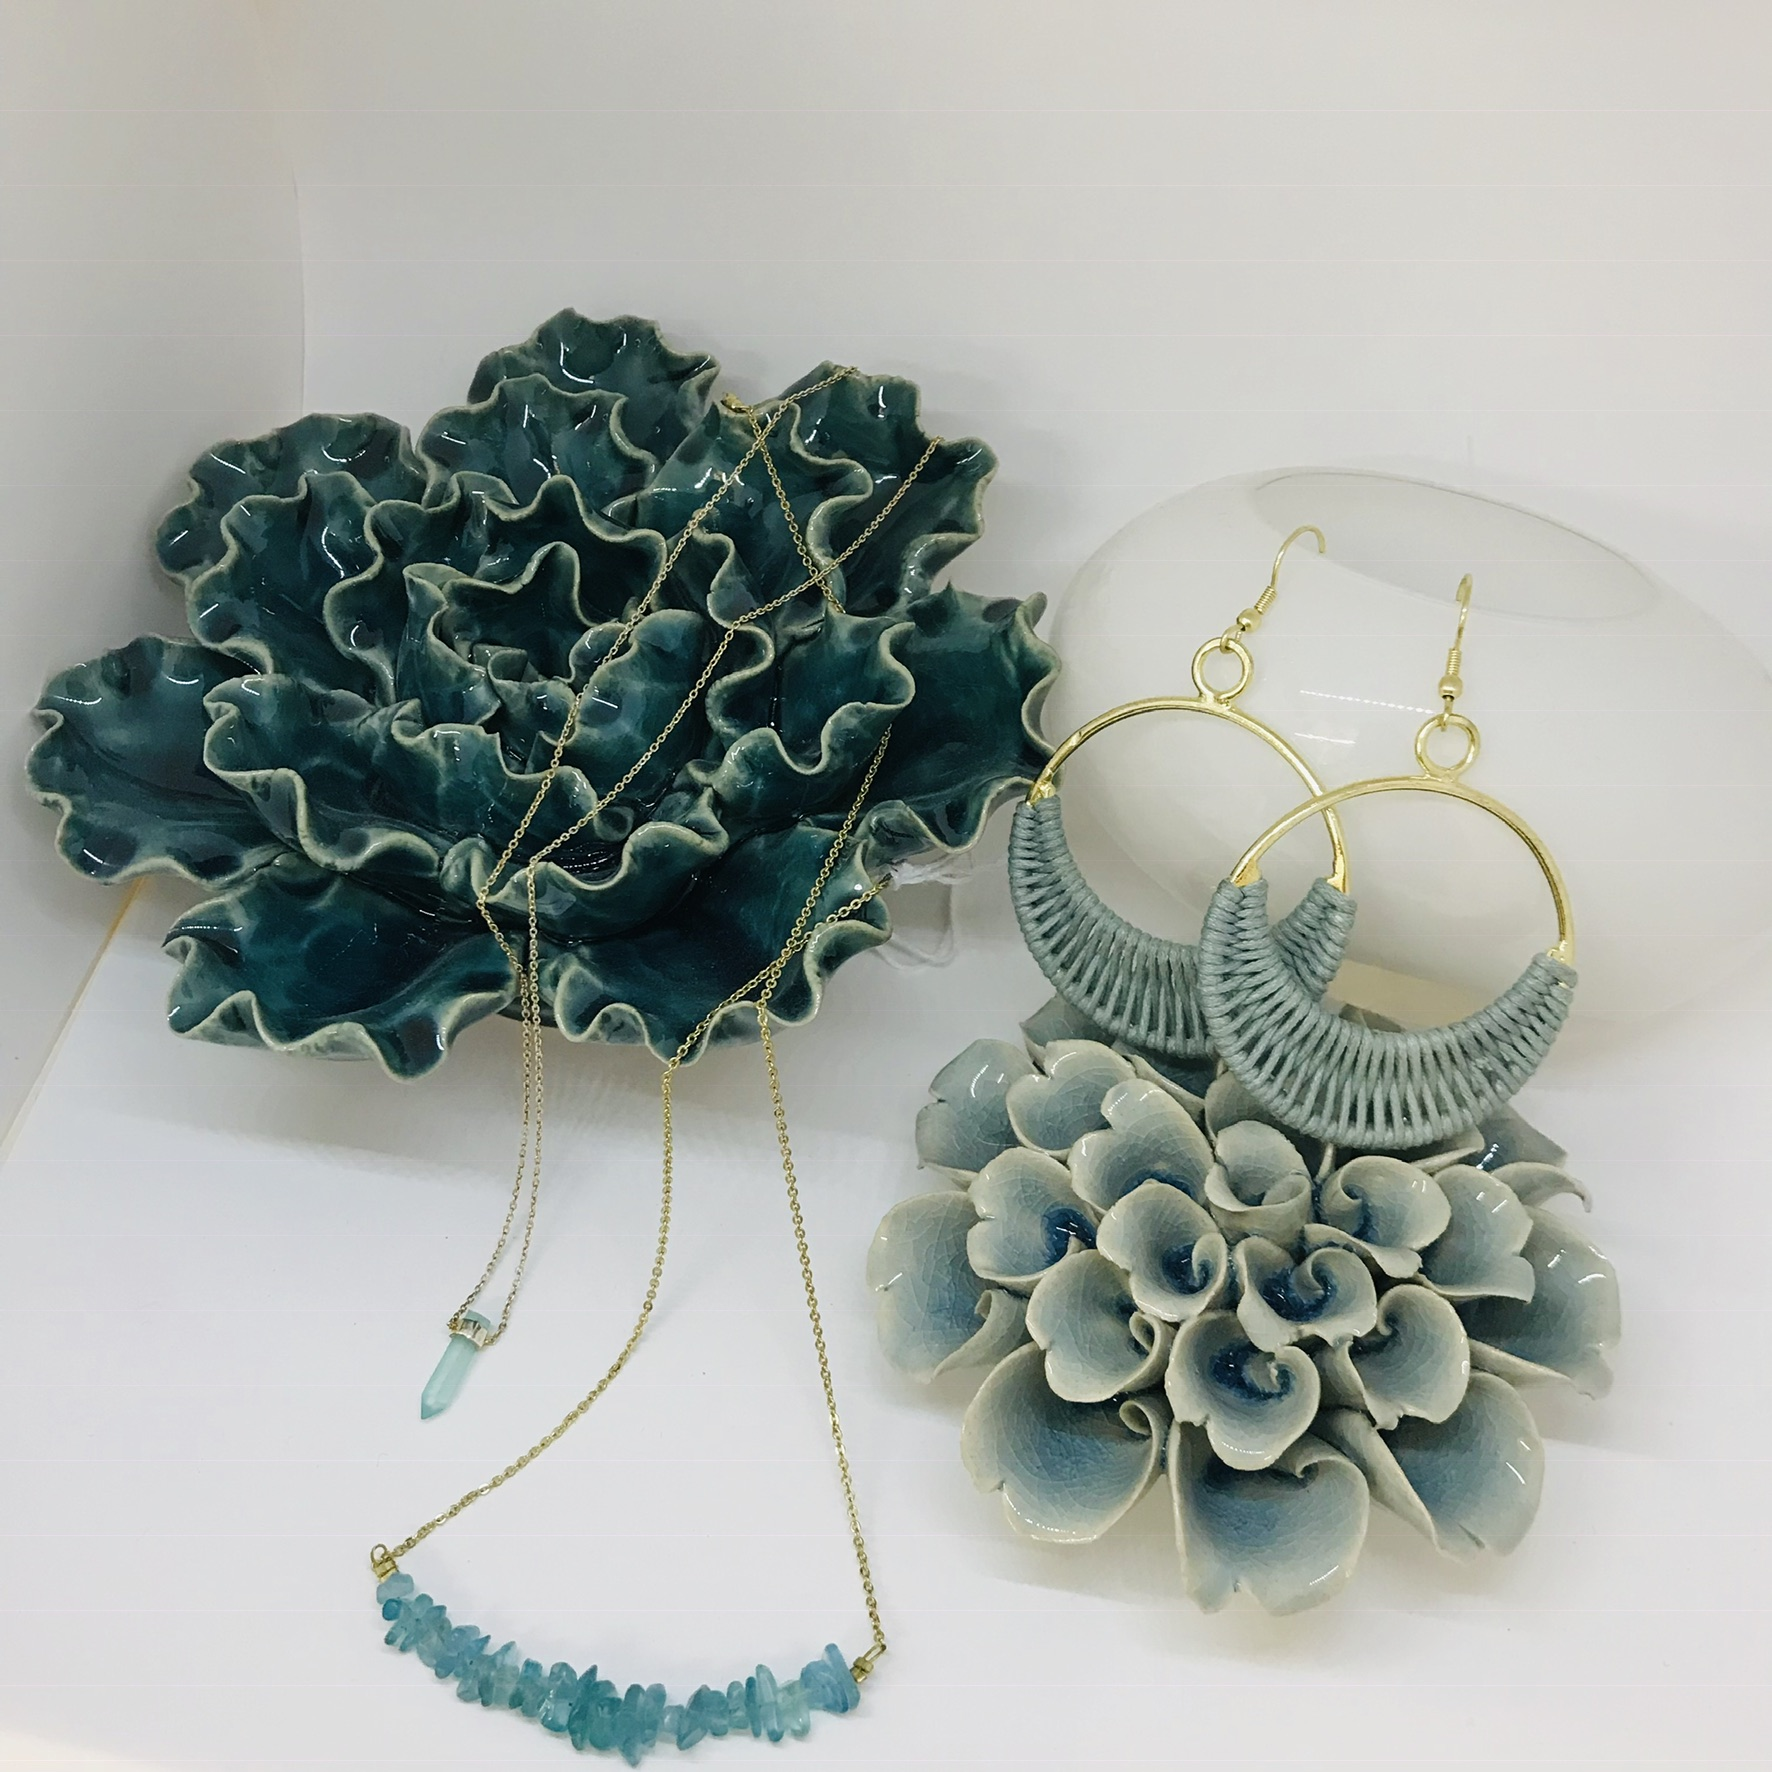 Gifts for your Wife - At DOMAIN, gifts for your wife are easy. We will help you pick out beautiful fair trade jewelry that fits all sizes, gorgeous ceramic flower succulents, and top it off with a single rose in a tabletop planter